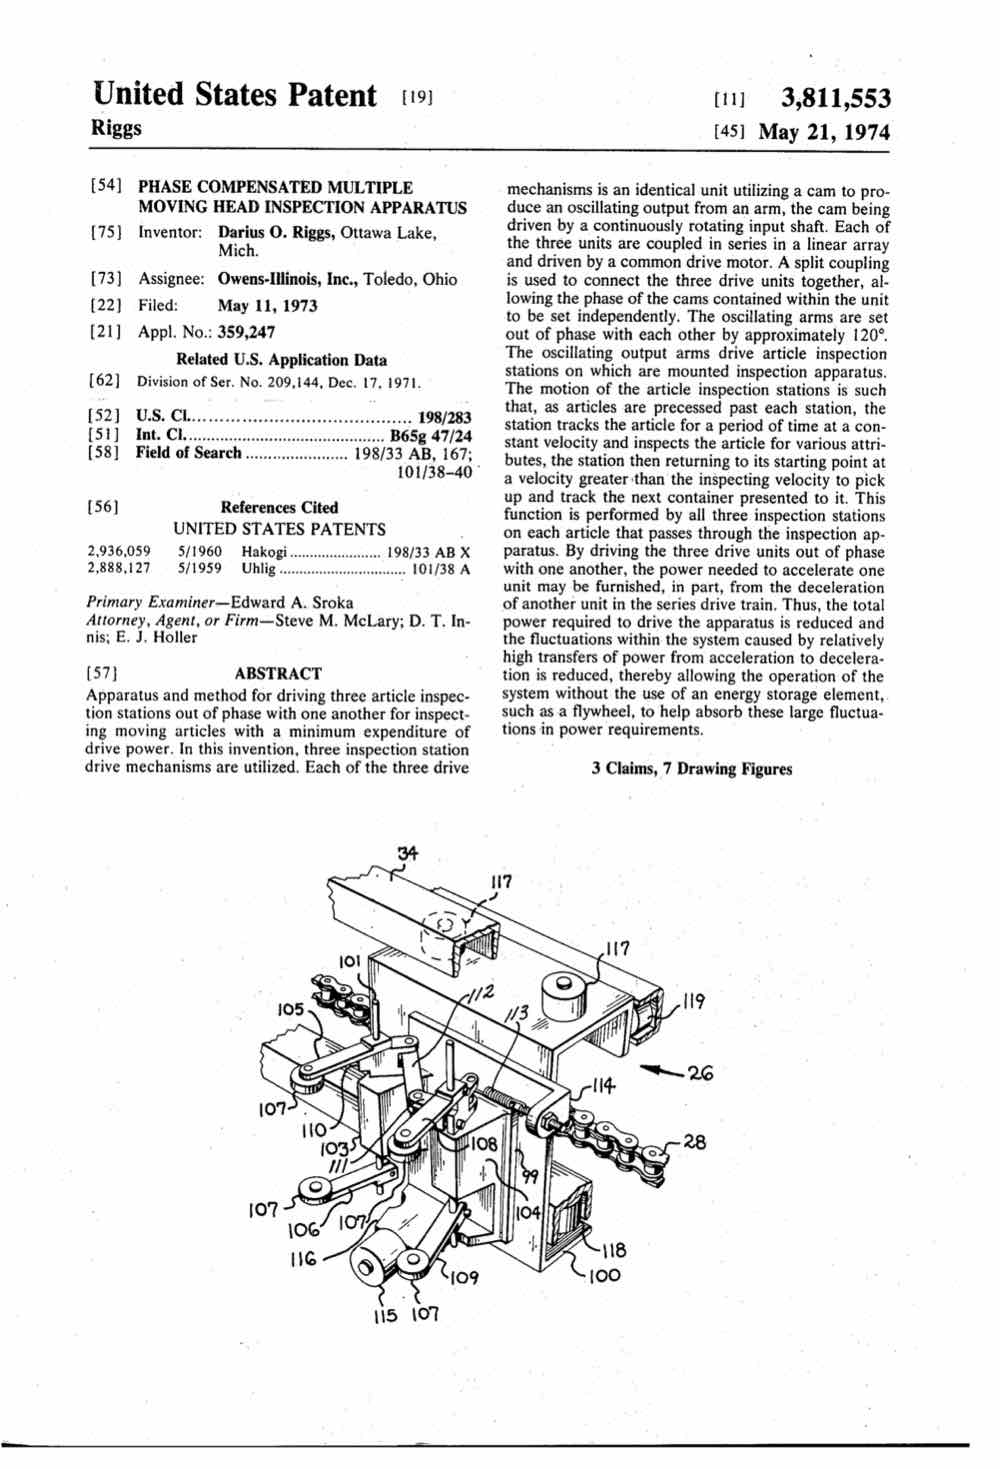 Phase compensated multiple moving head inspection apparatus